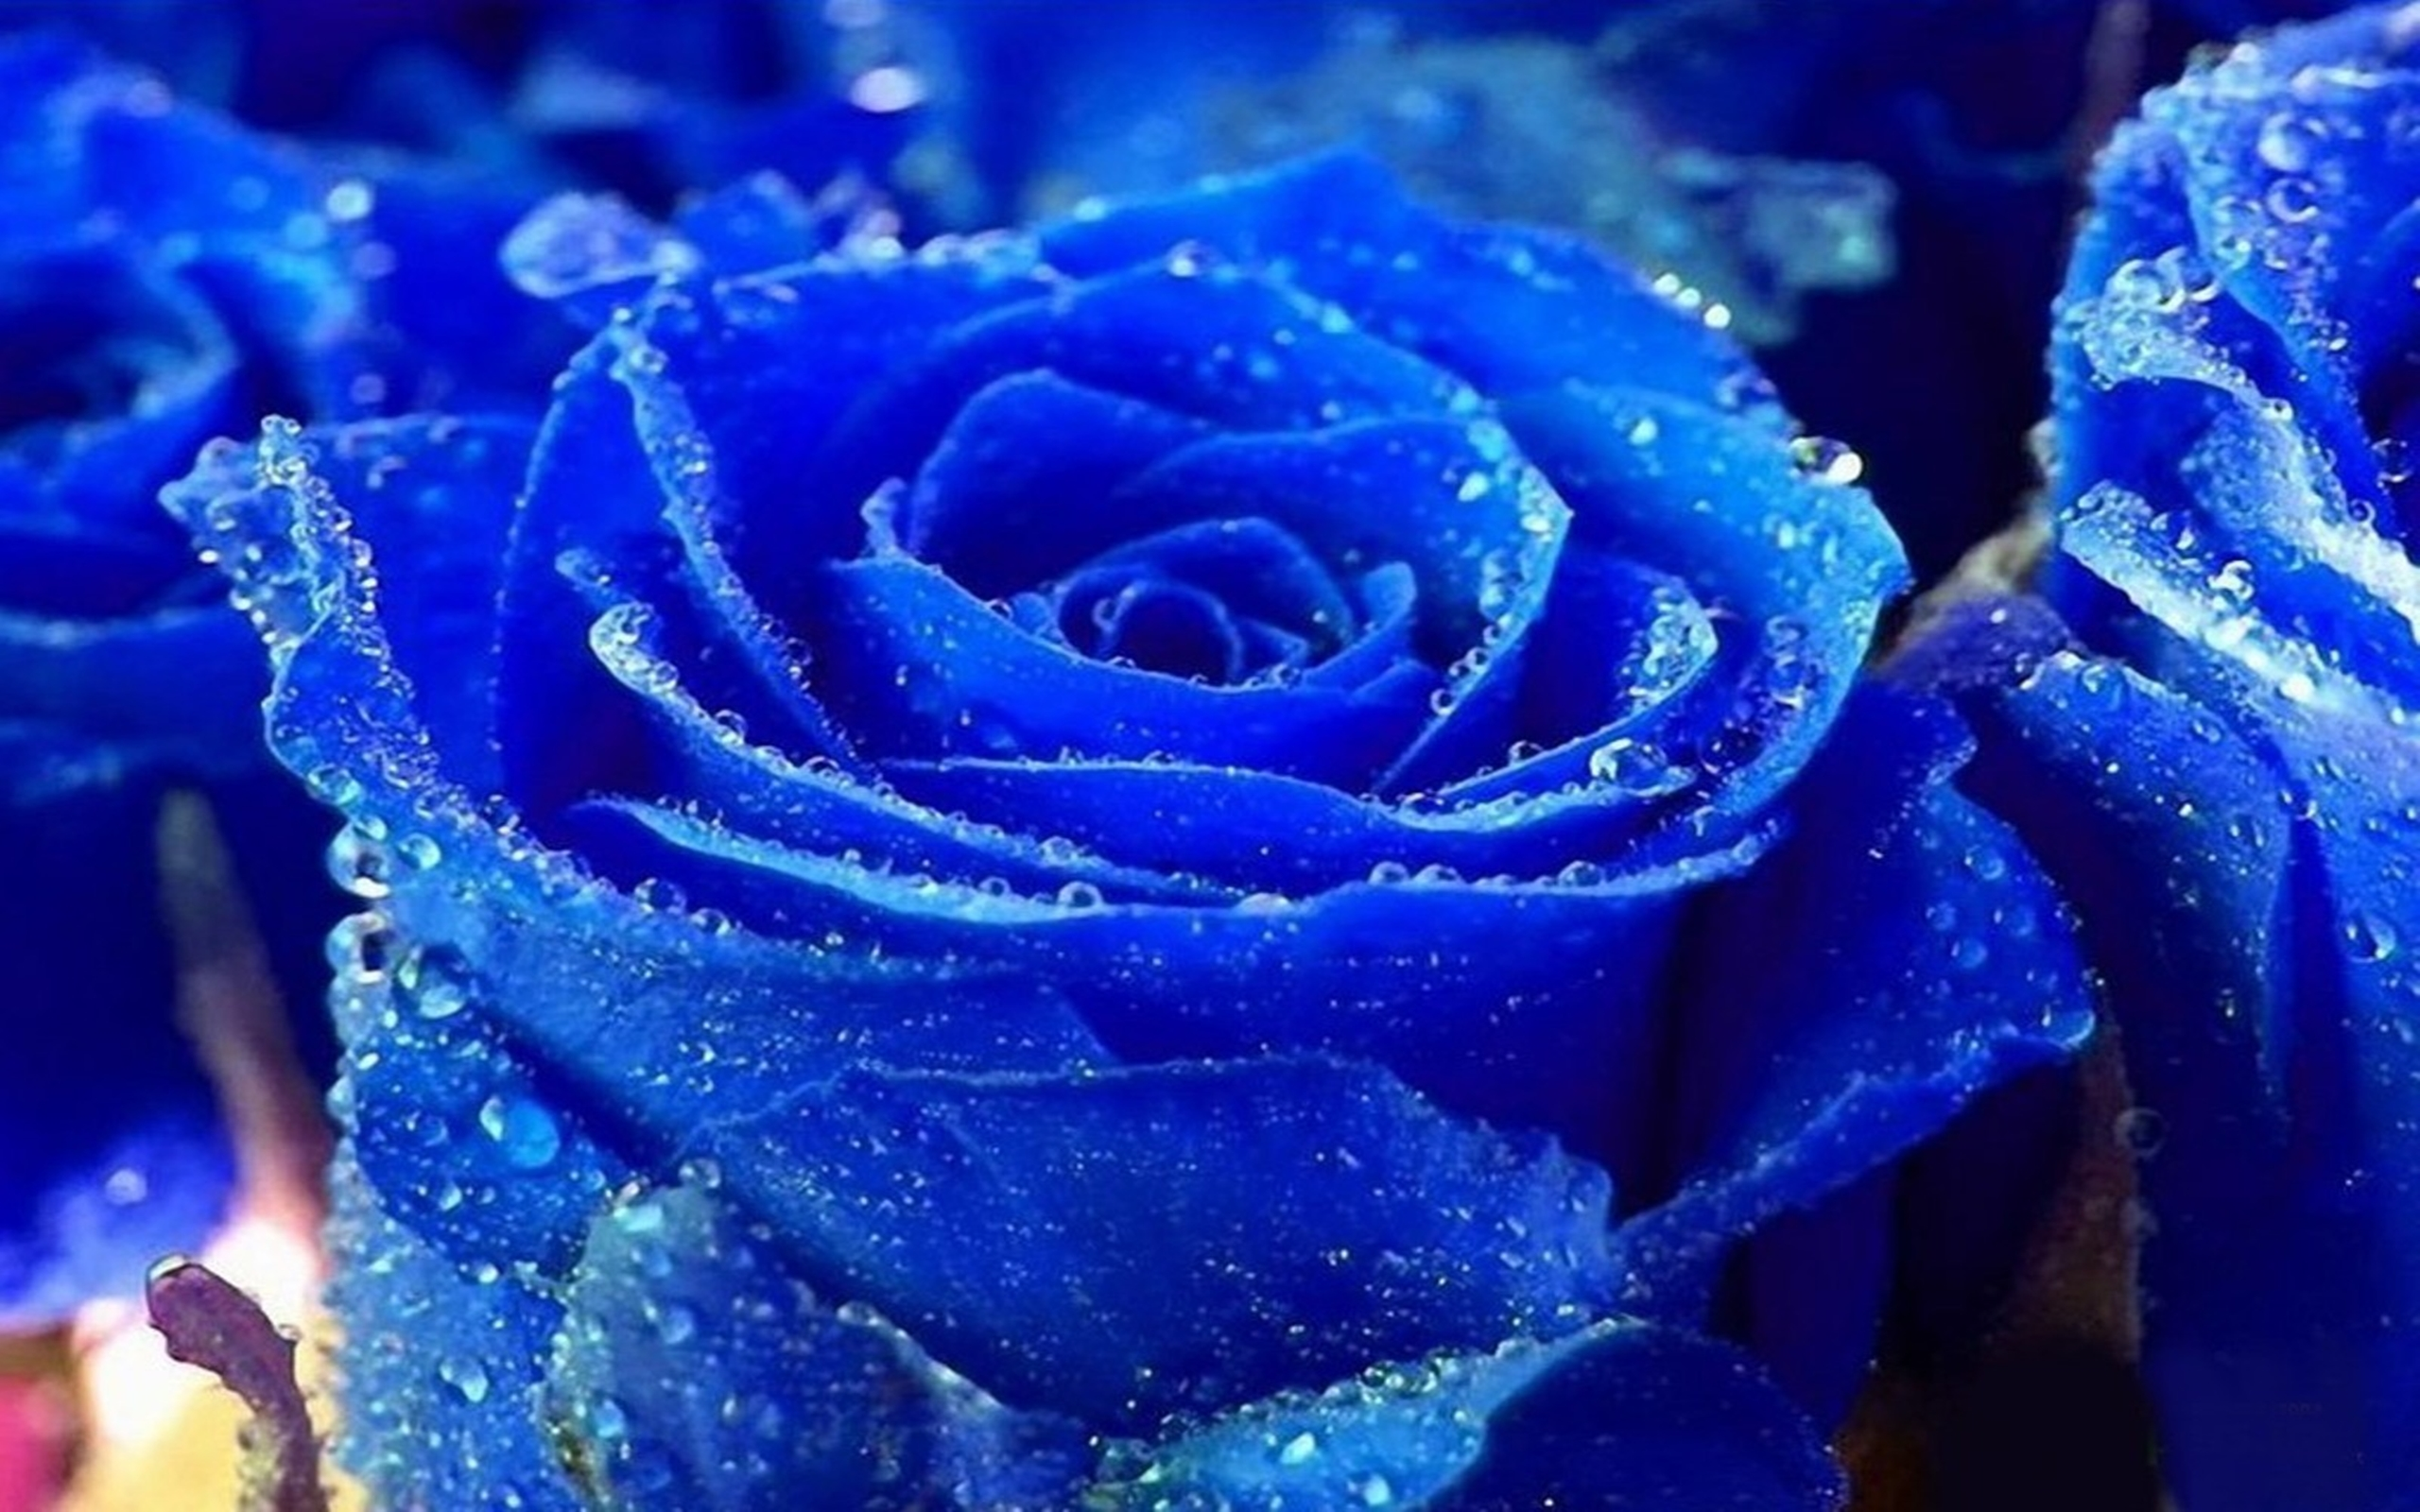 Occasion By Choosing The Best Royal Blue Roses Wine For Your Christmas Parties